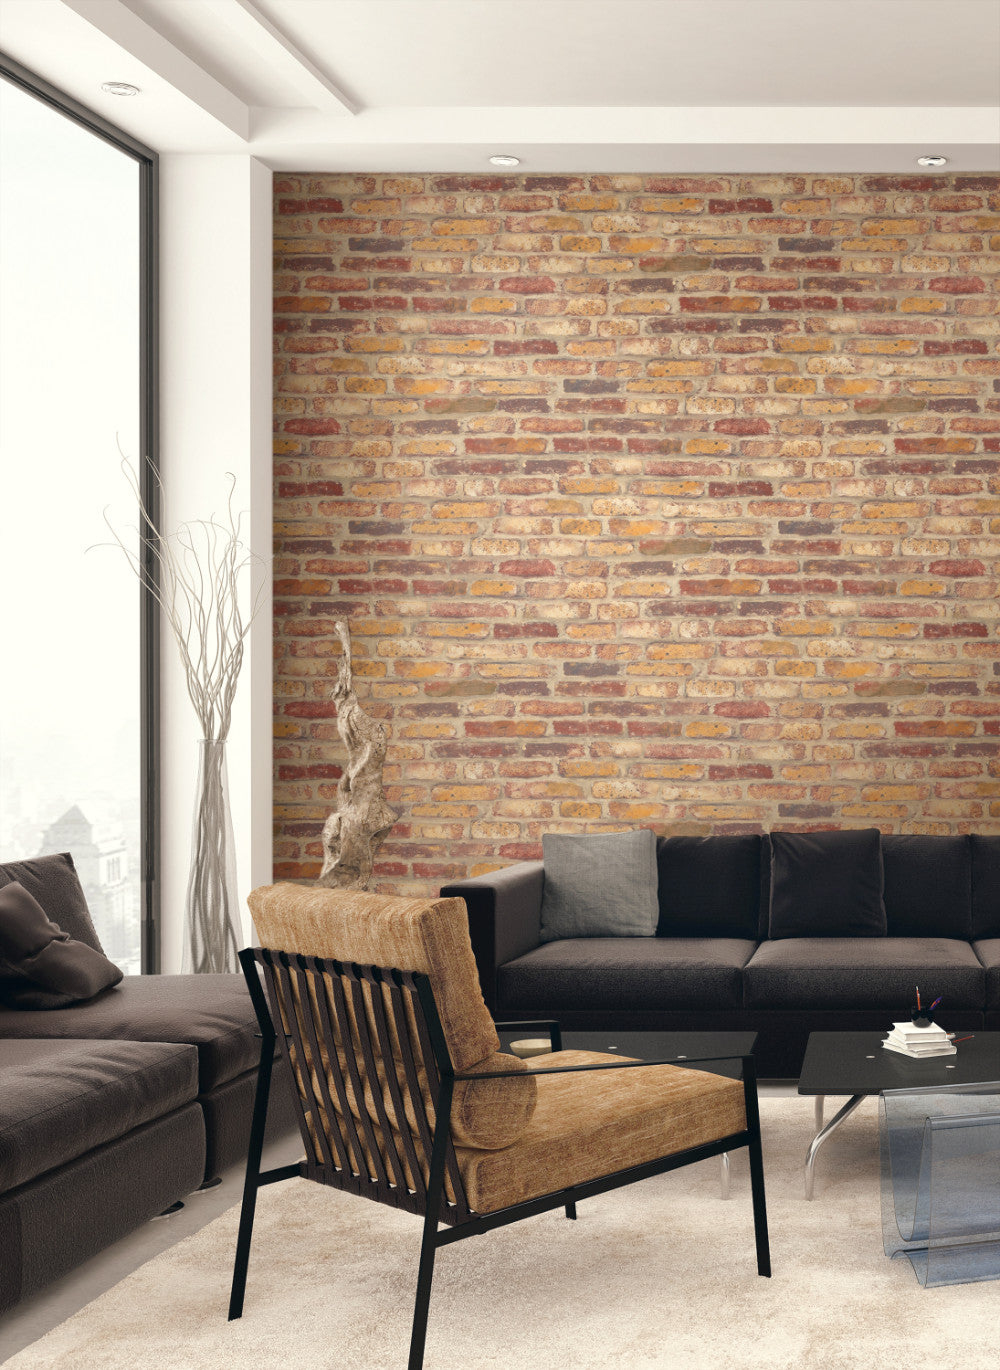 Rustic Faux Brick Peel And Stick Wallpaper In Red By Nextwall